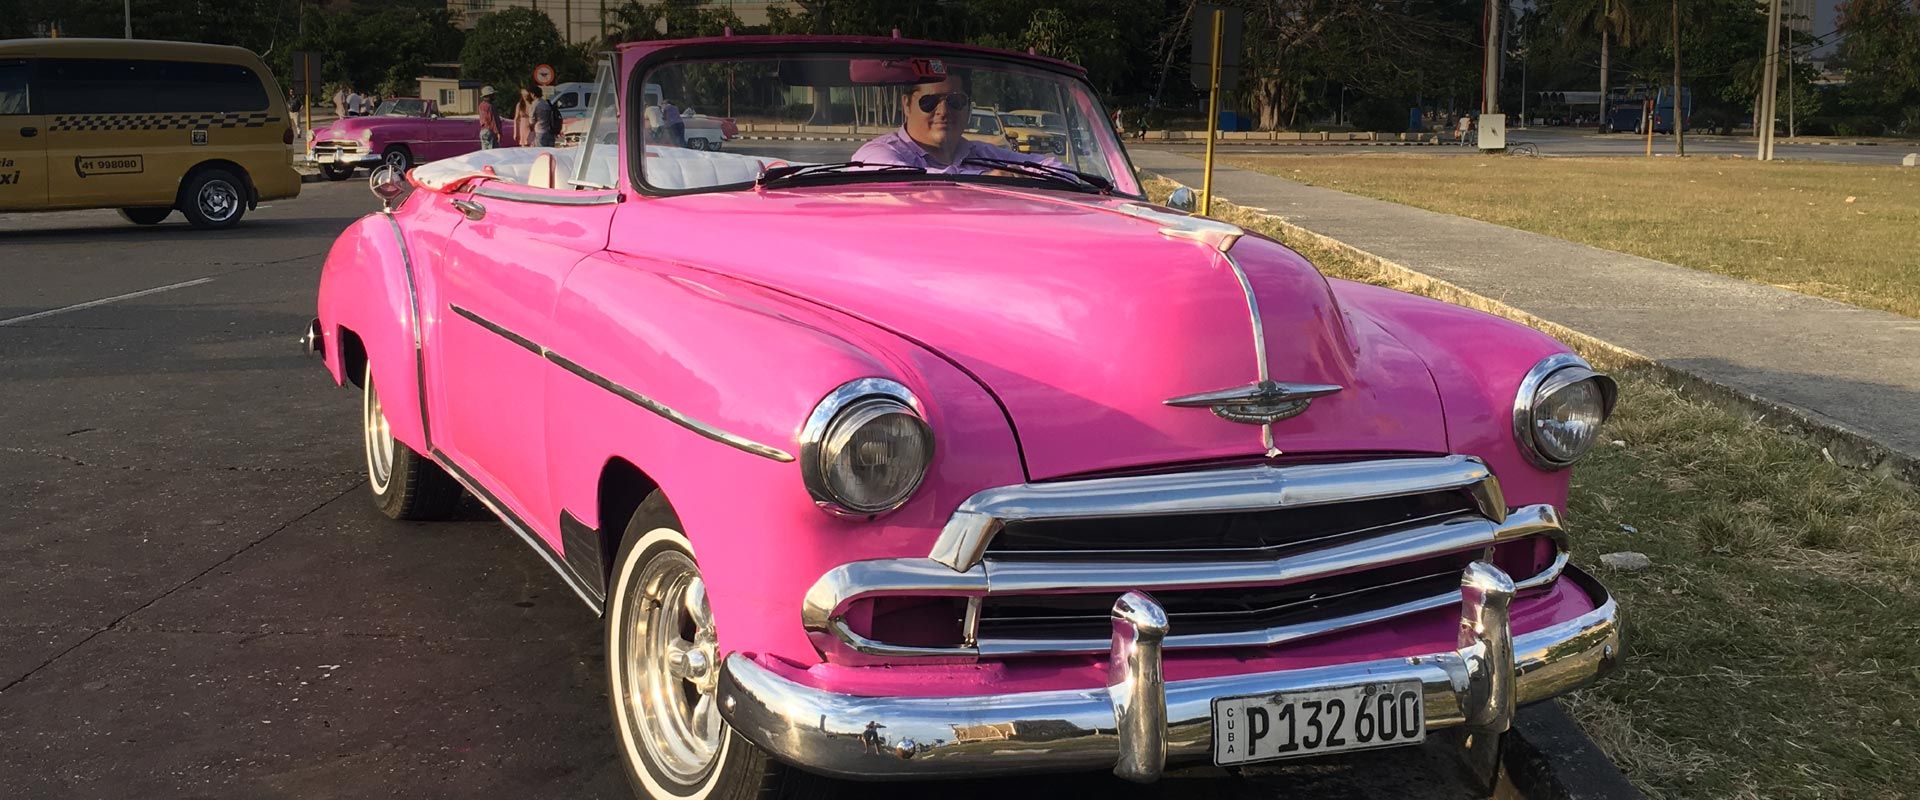 Drive through Havana with Flamingo Havana Taxi - Chevrolet 1950 convertible